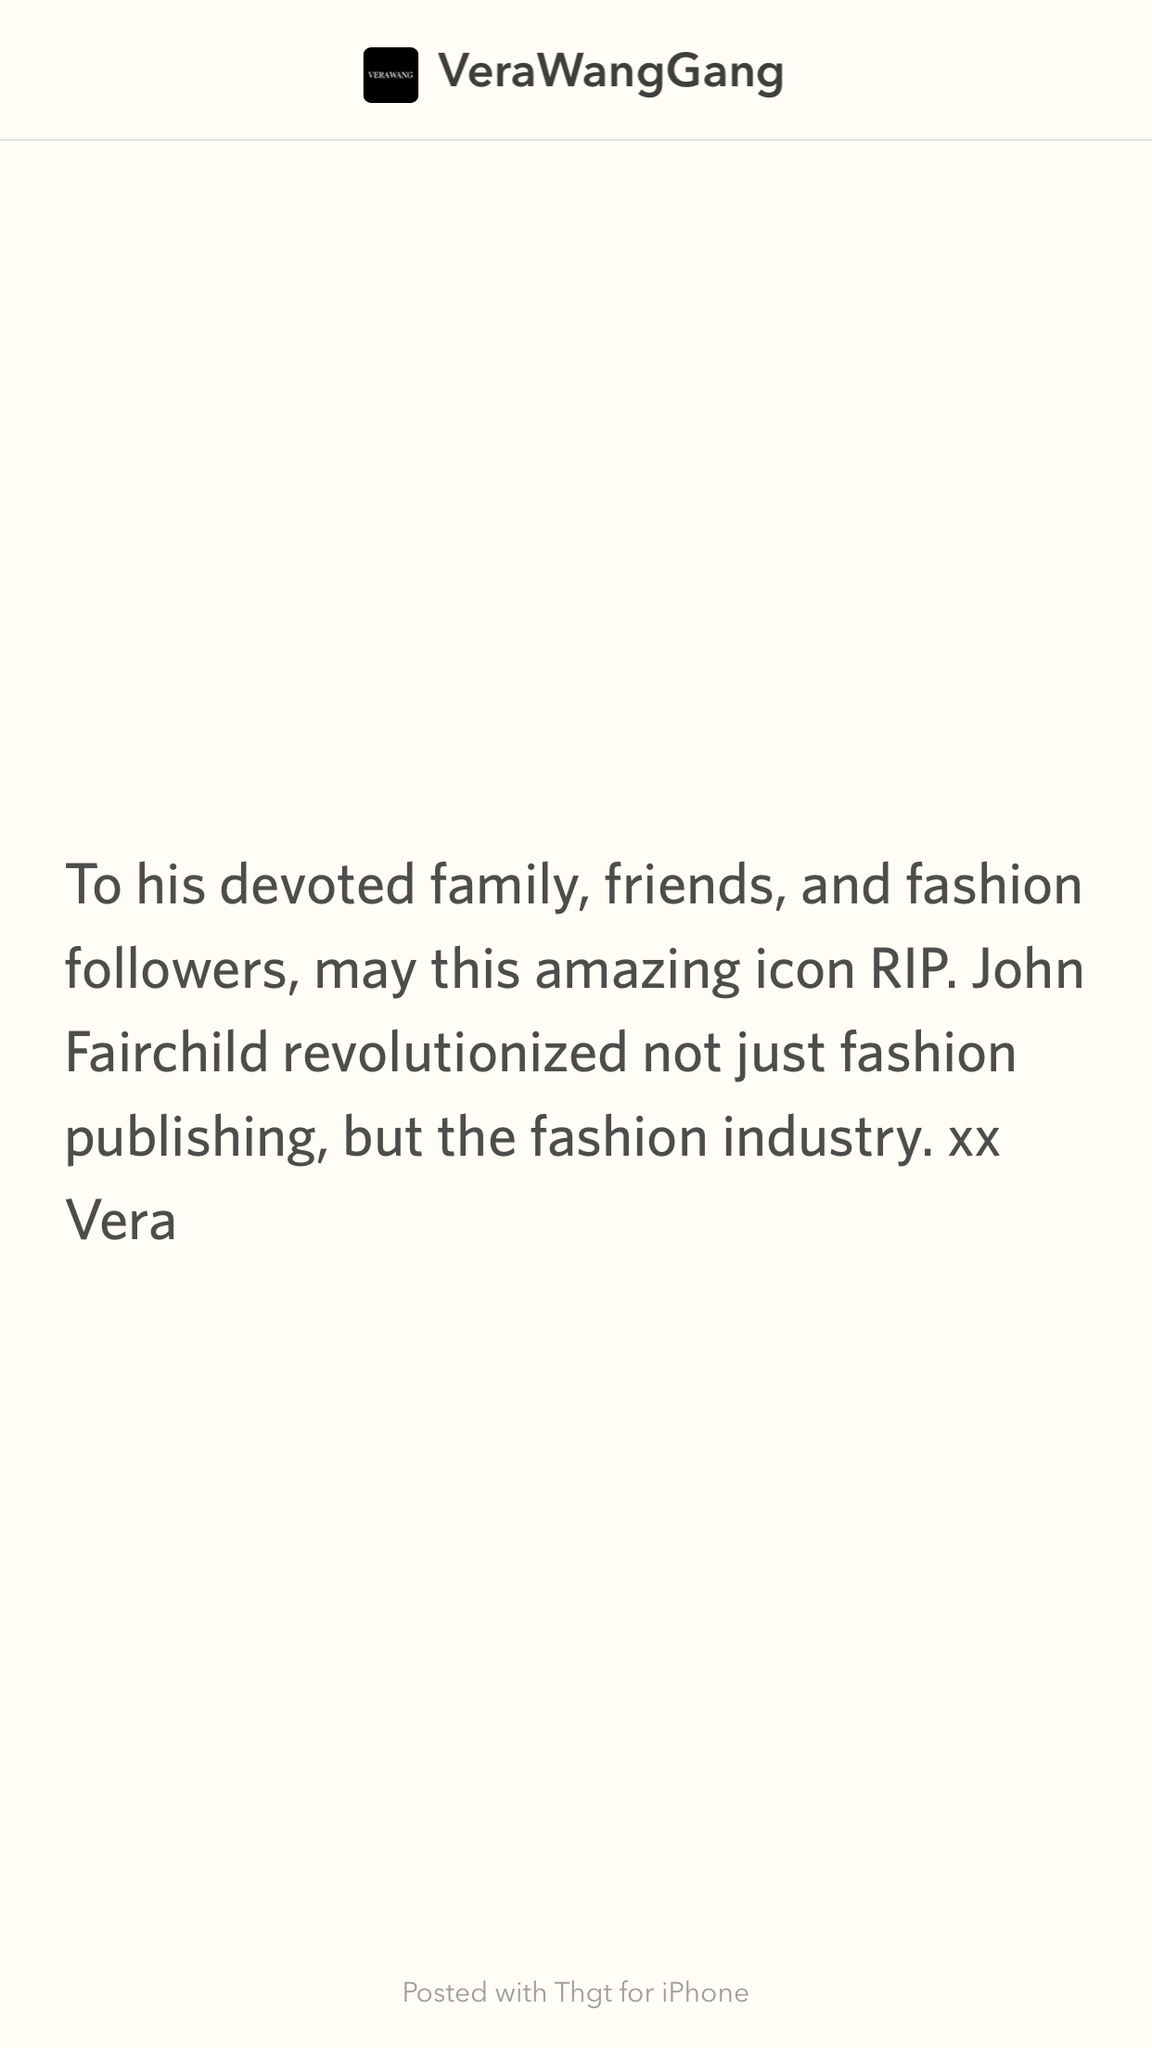 To his devoted family, friends, and fashion followers, may this amazi… http://t.co/UYNiRvqpFC http://t.co/XYajYLWnA9